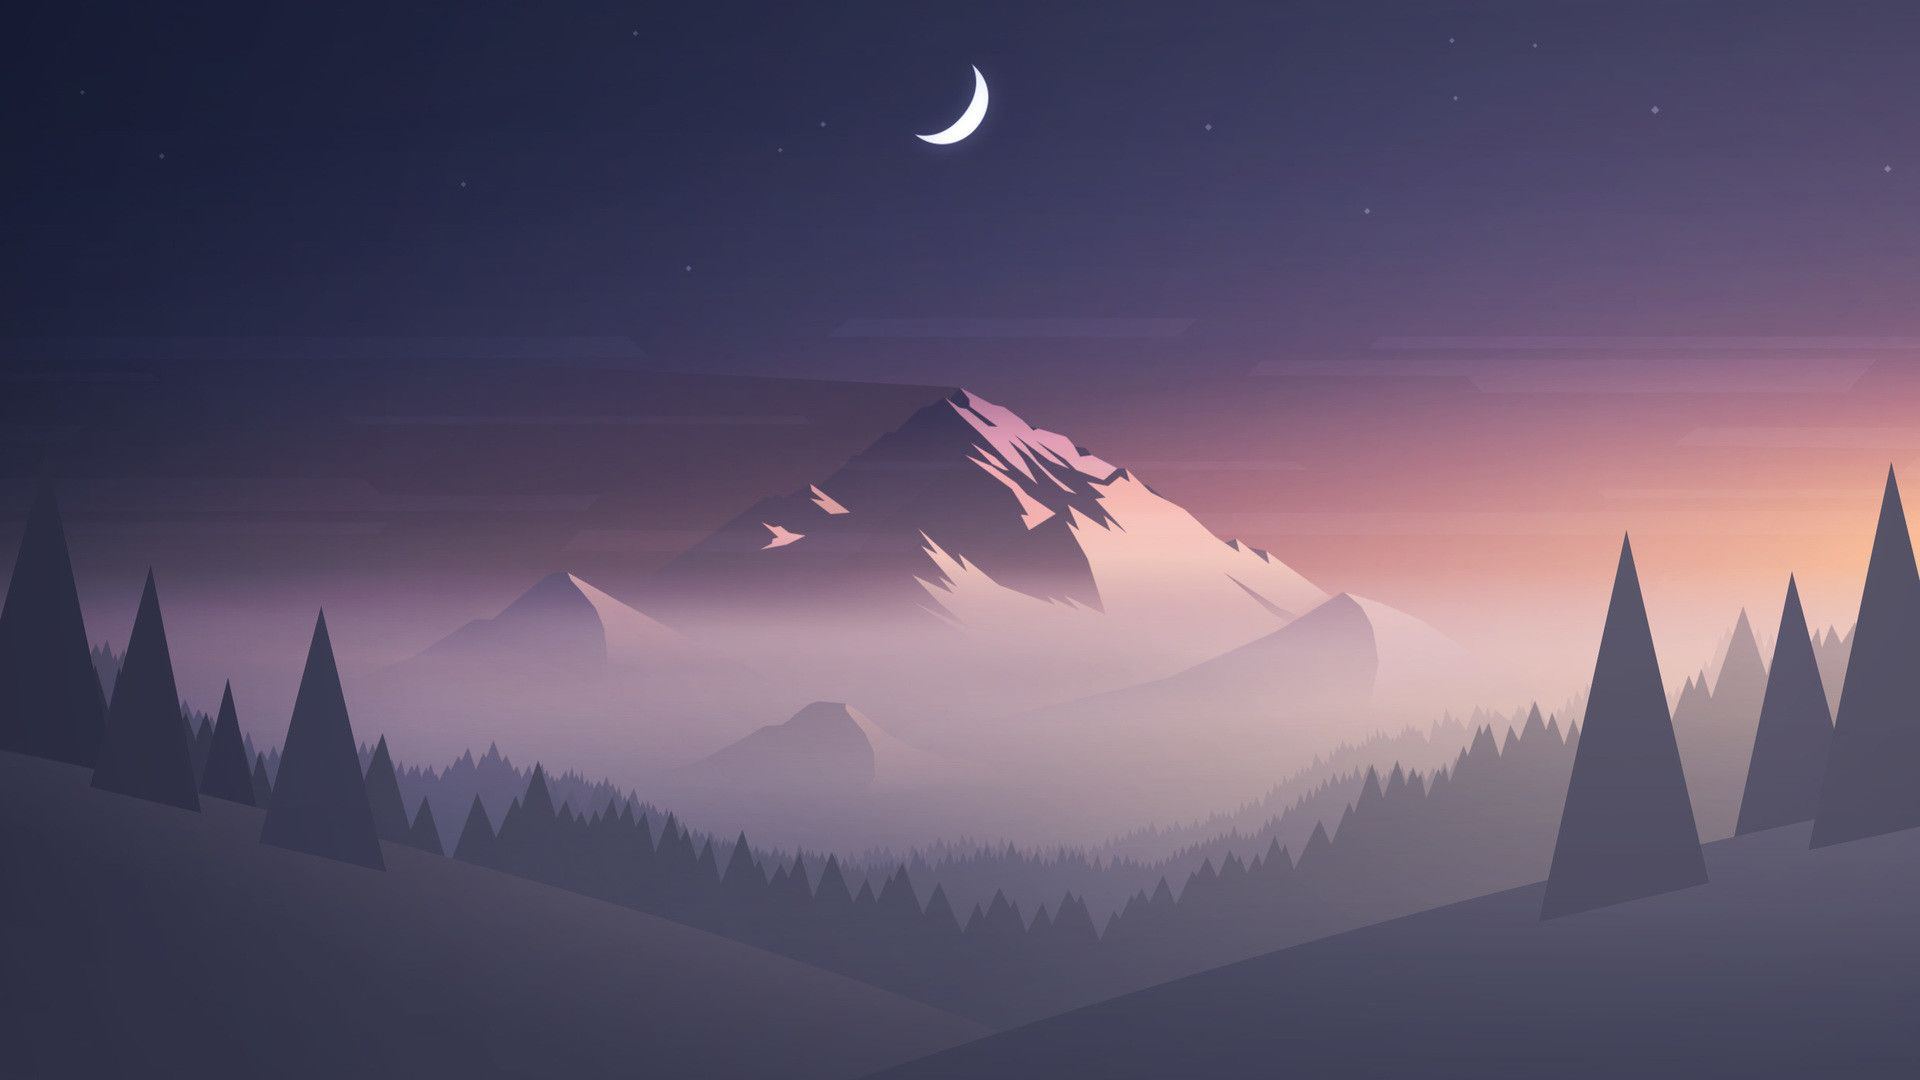 Res 1920x1080 Mountains Moon Trees Minimalism Hd Jpg Aesthetic Desktop Wallpaper Minimal Wallpaper Minimalist Desktop Wallpaper